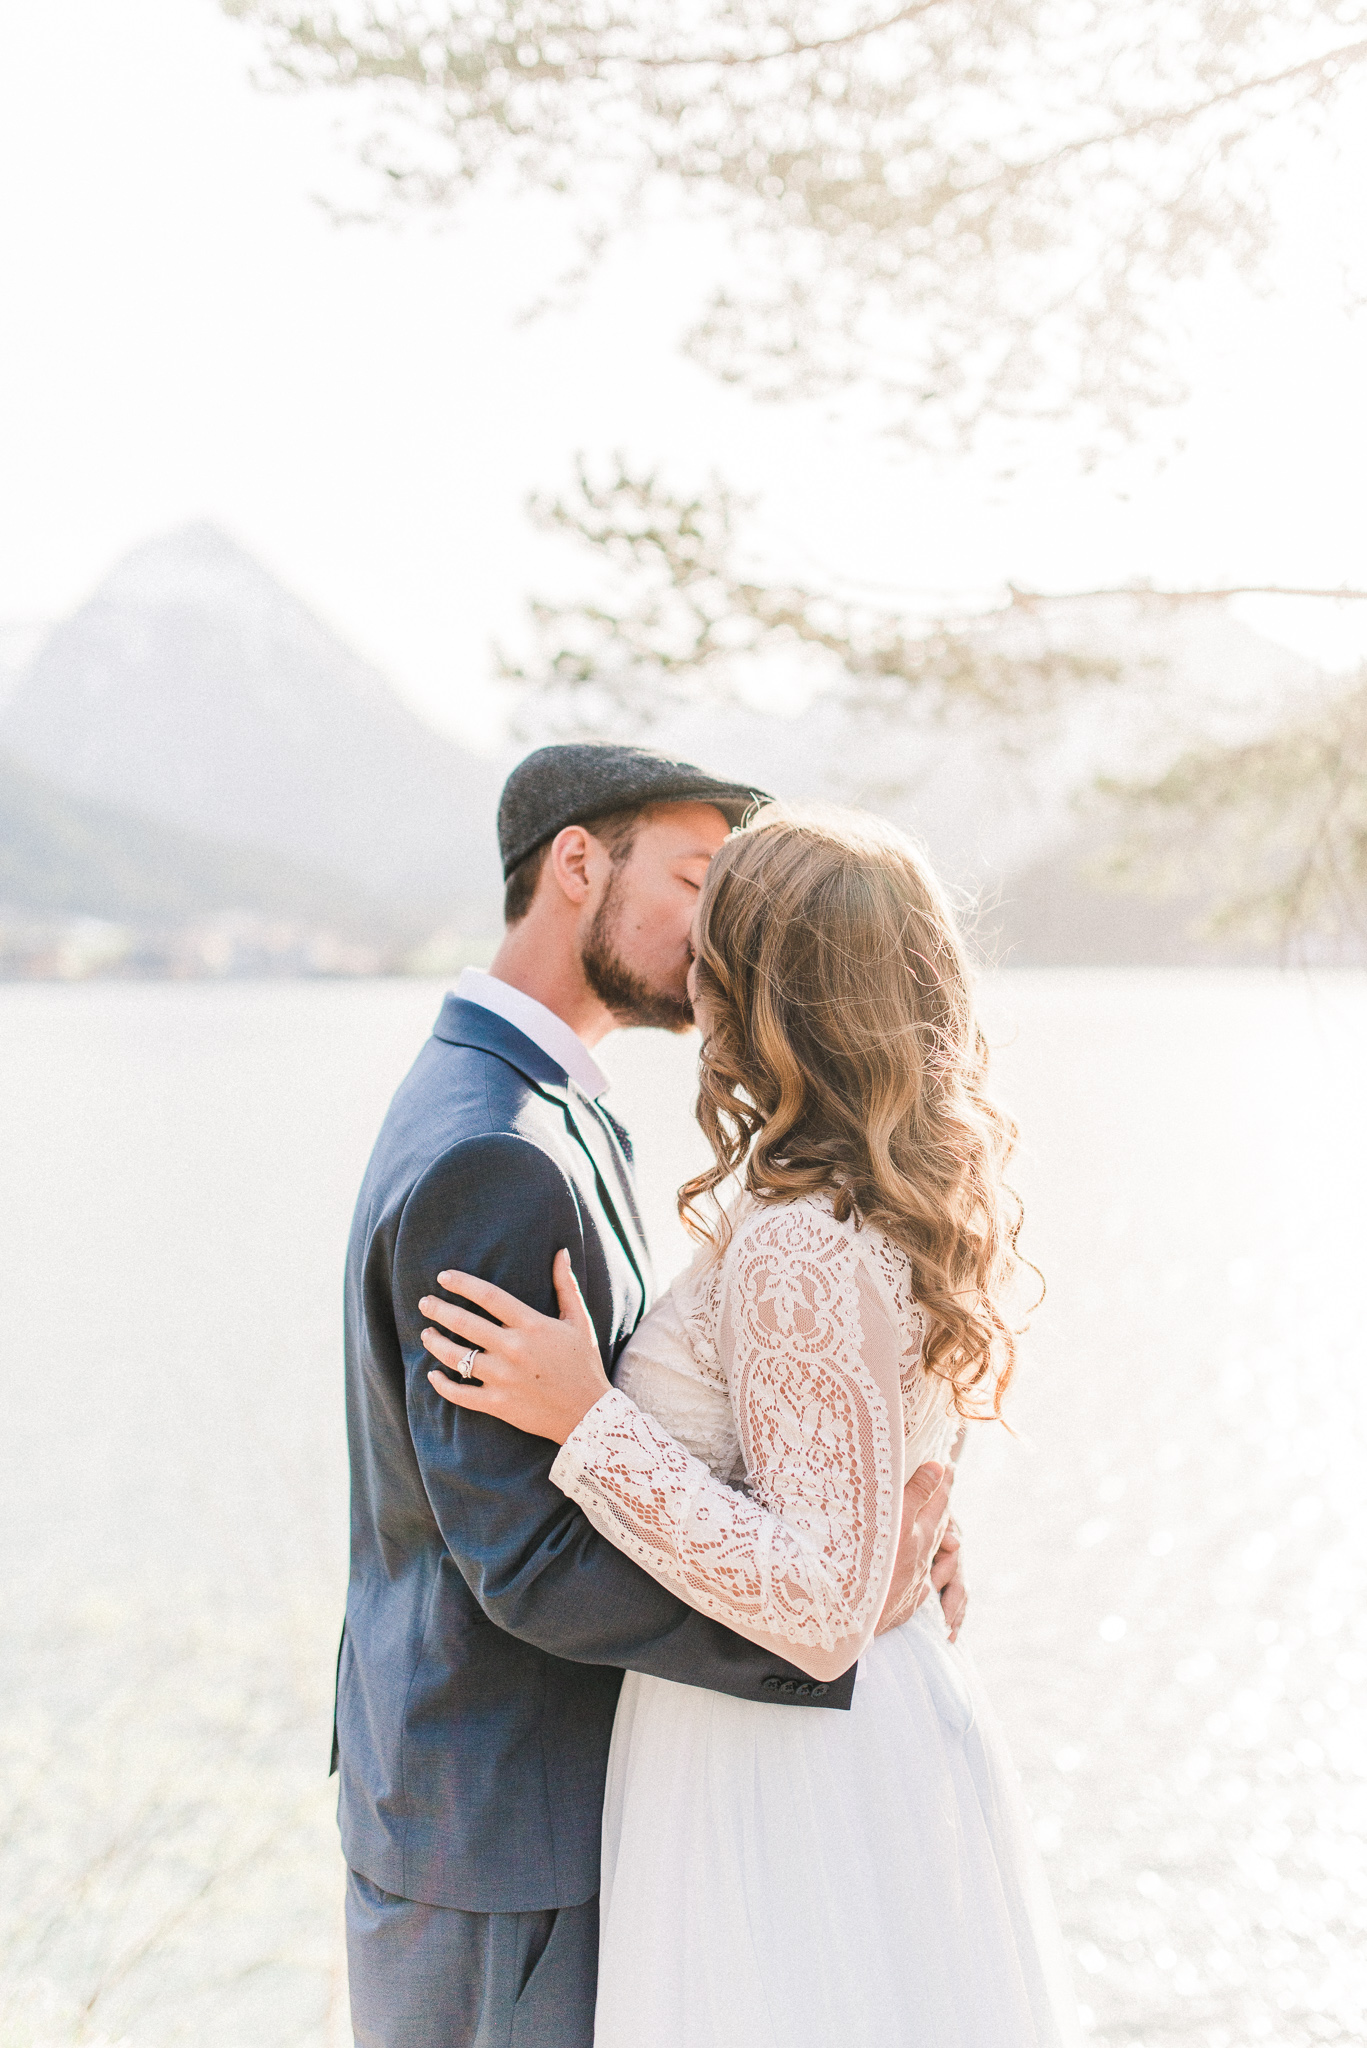 International Elopement Destination Wedding Photographers in Indianapolis